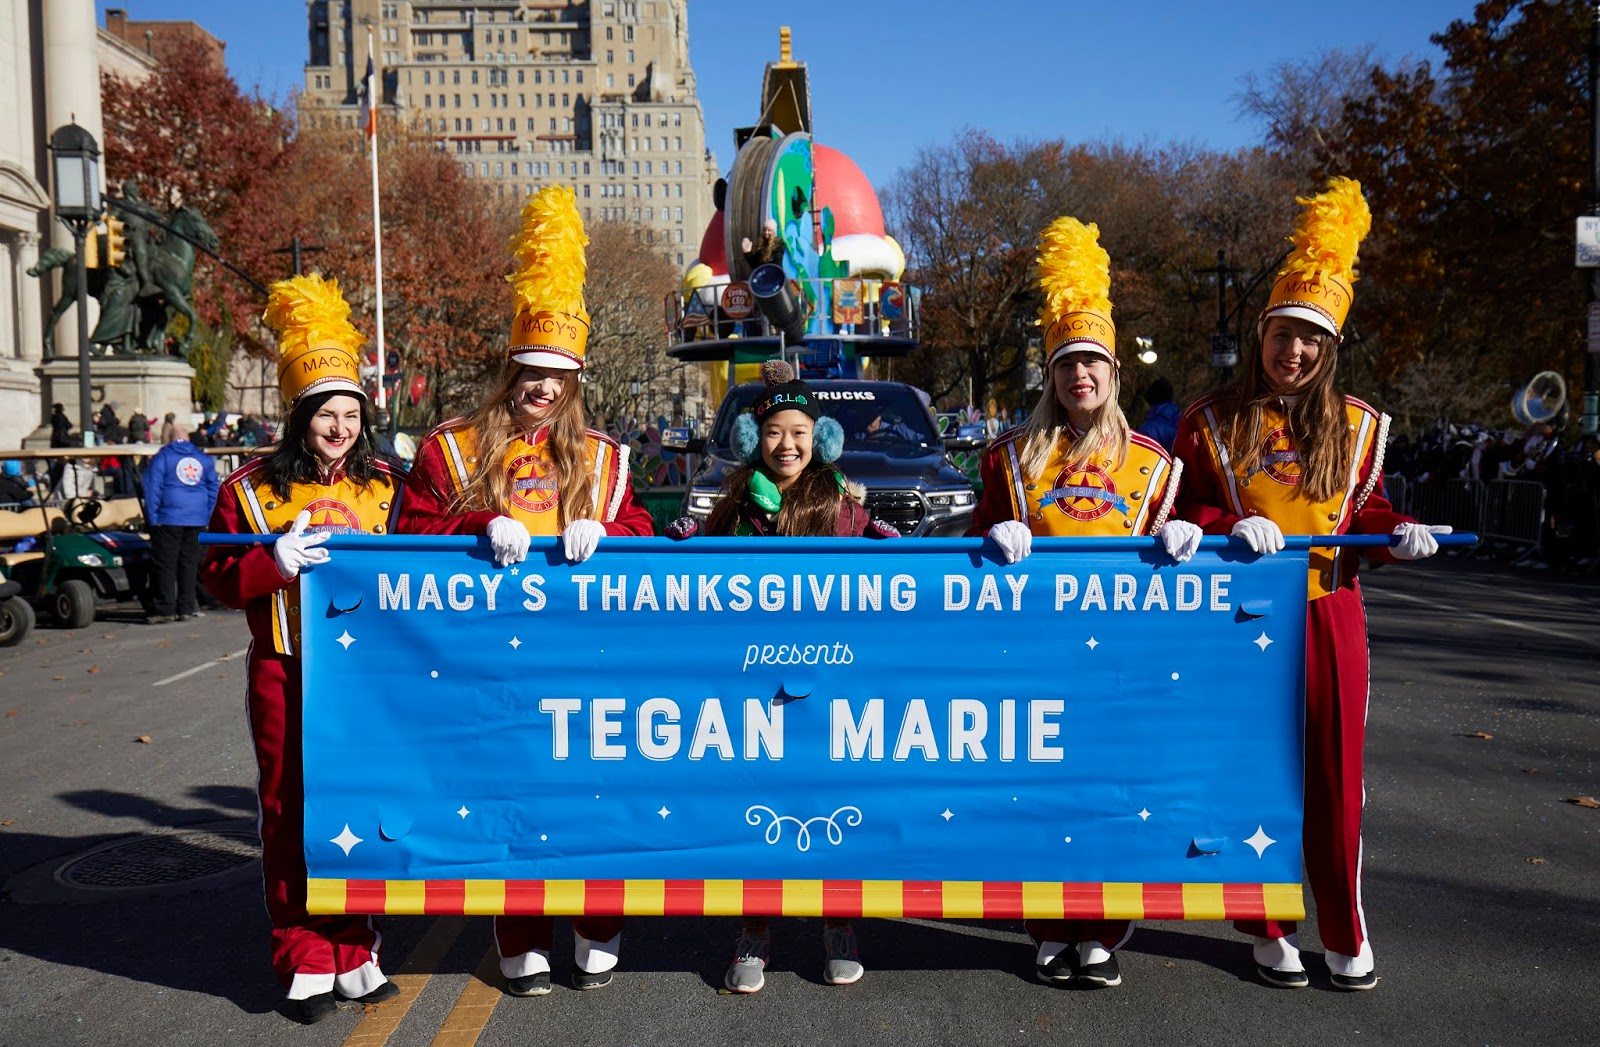 Top Highlights from the Macy's Thanksgiving Day Parade You